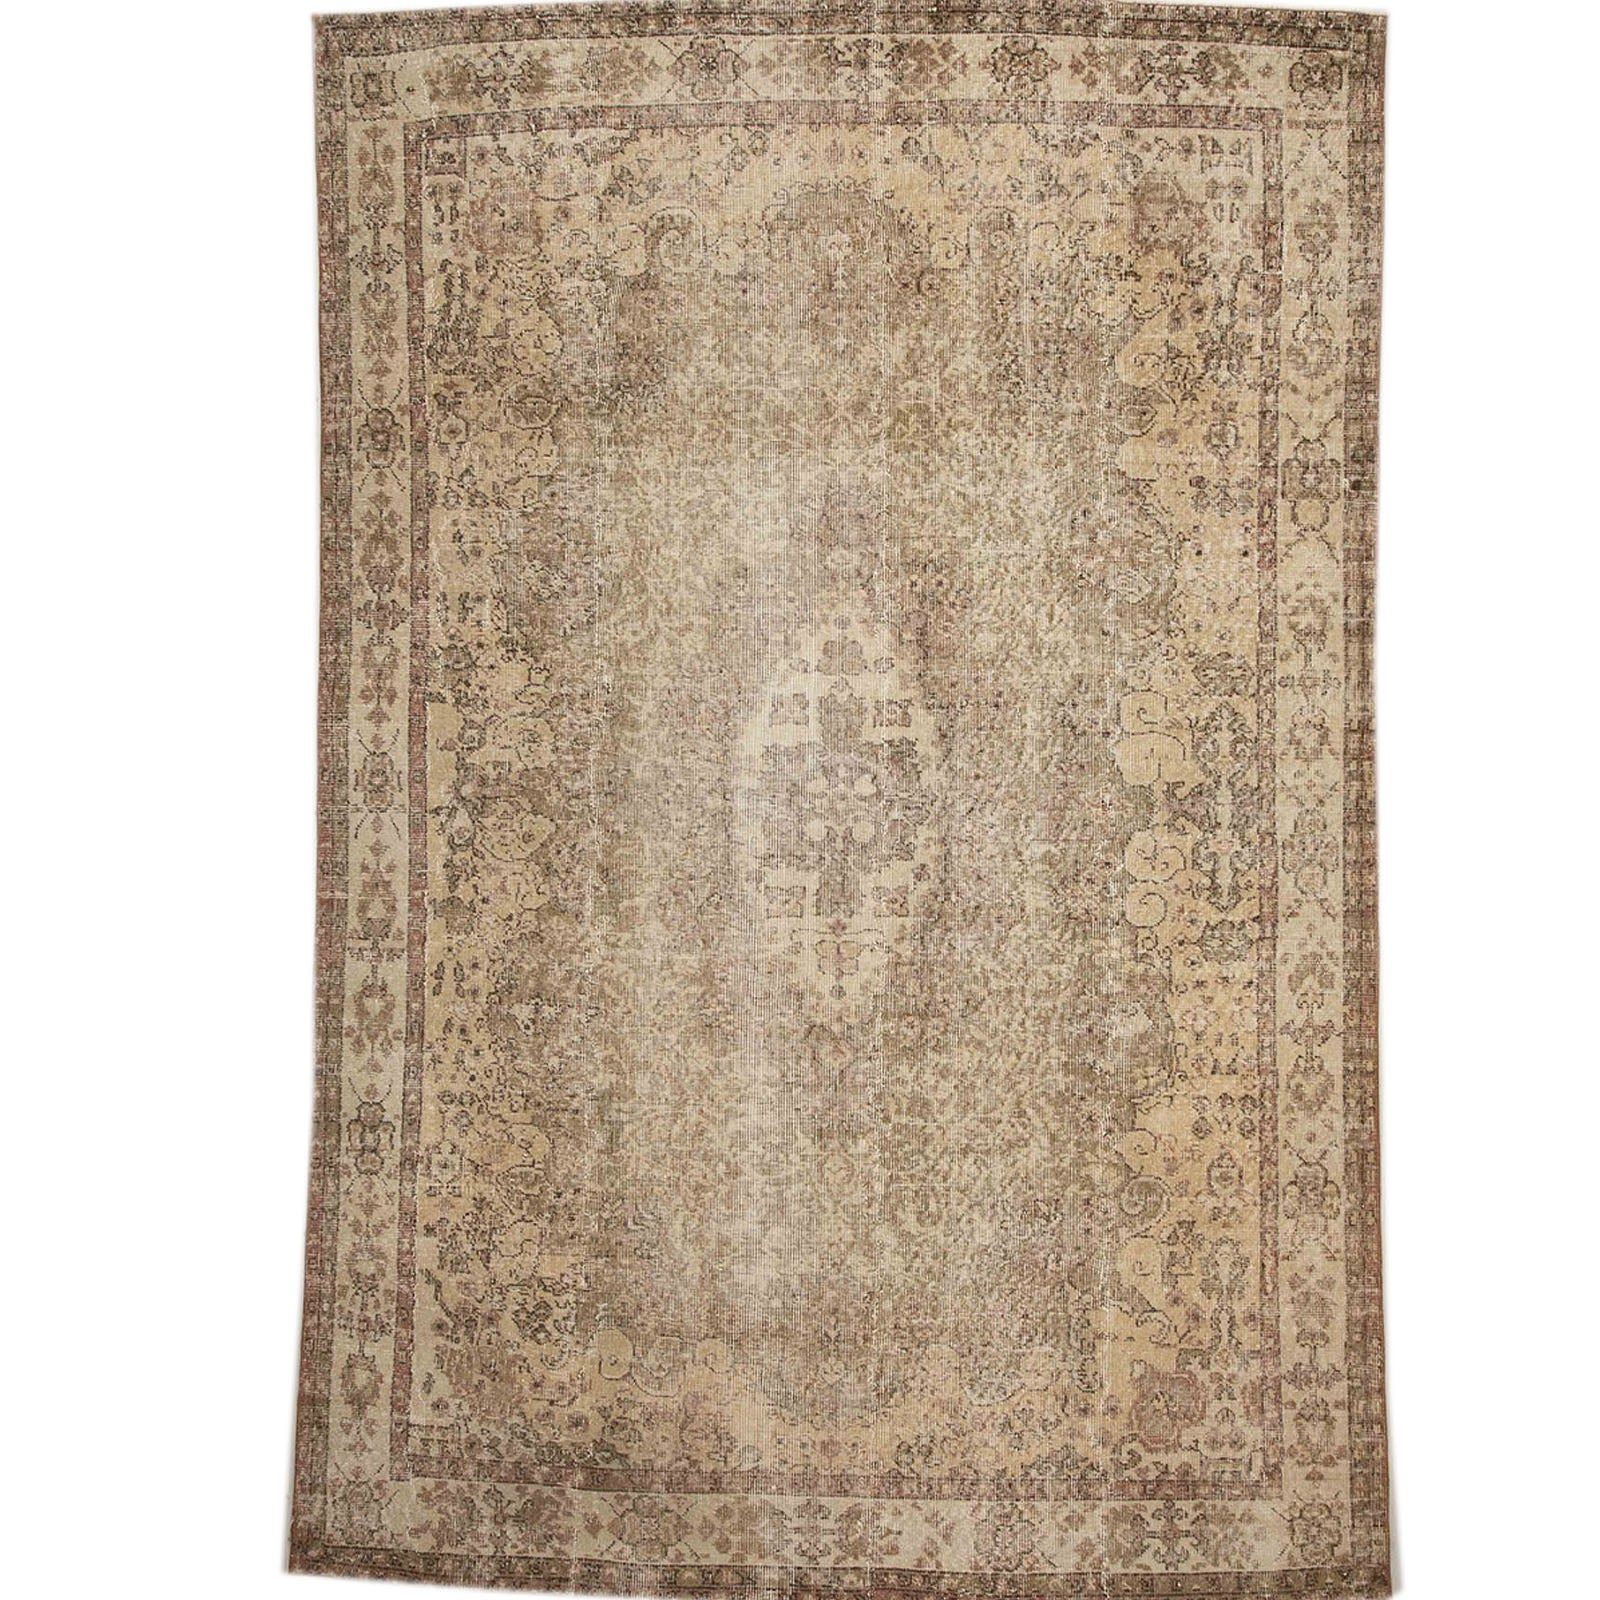 Hali 194X287  CM Bursa Handmade over dyed rug  2585 -  194*287 سجاده بورصة صناعة يدوية على بساط مصبوغ - Shop Online Furniture and Home Decor Store in Dubai, UAE at ebarza